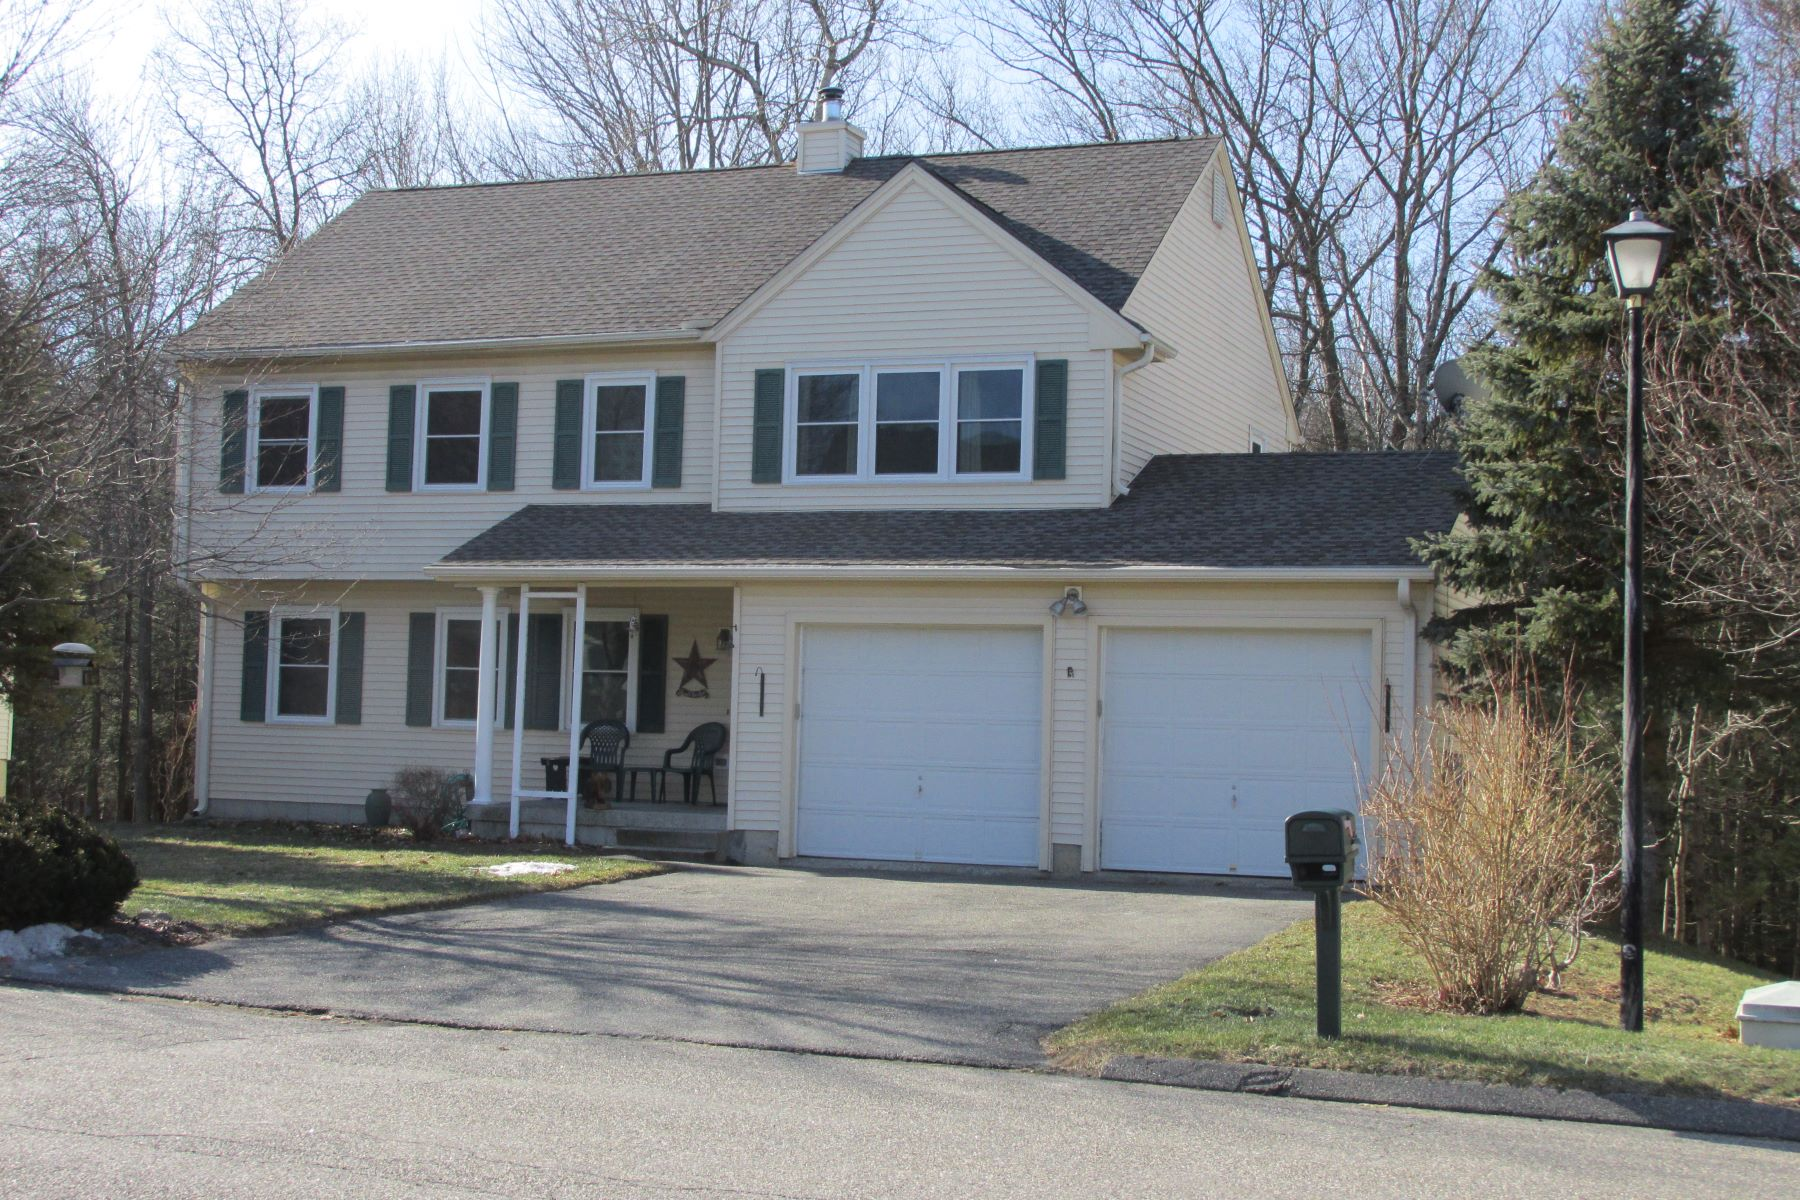 Villa per Vendita alle ore Nicely Maintained and Updated Home 167 Ginger Ln Torrington, Connecticut 06790 Stati Uniti